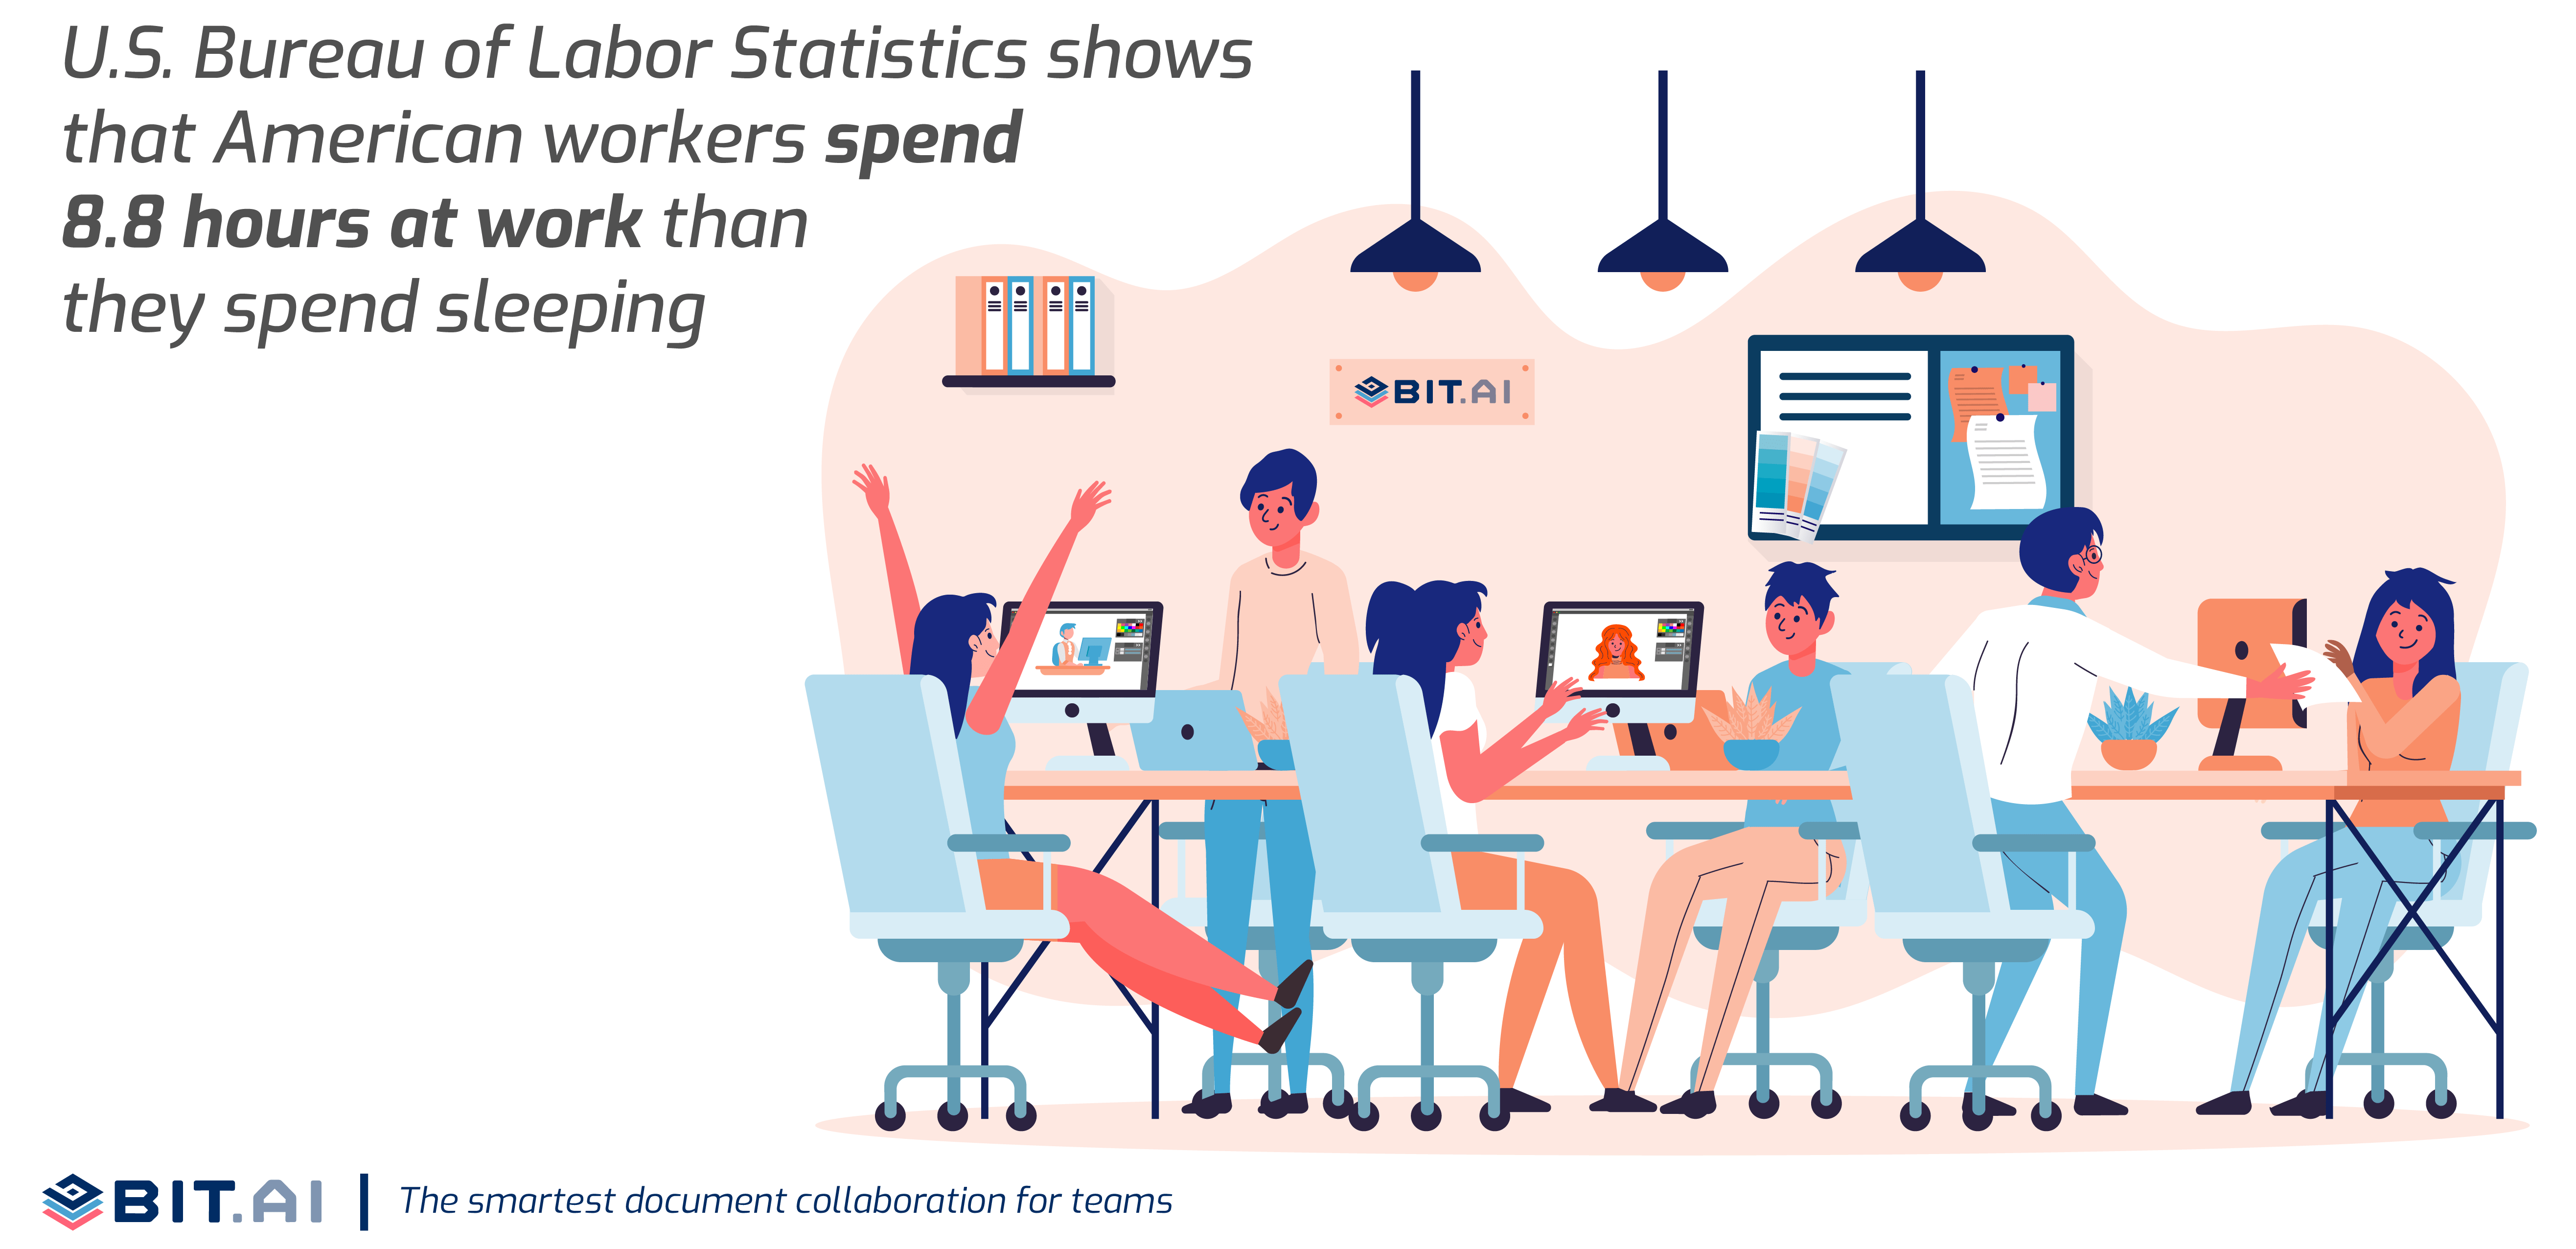 Statistic illustration related to workplace productivity